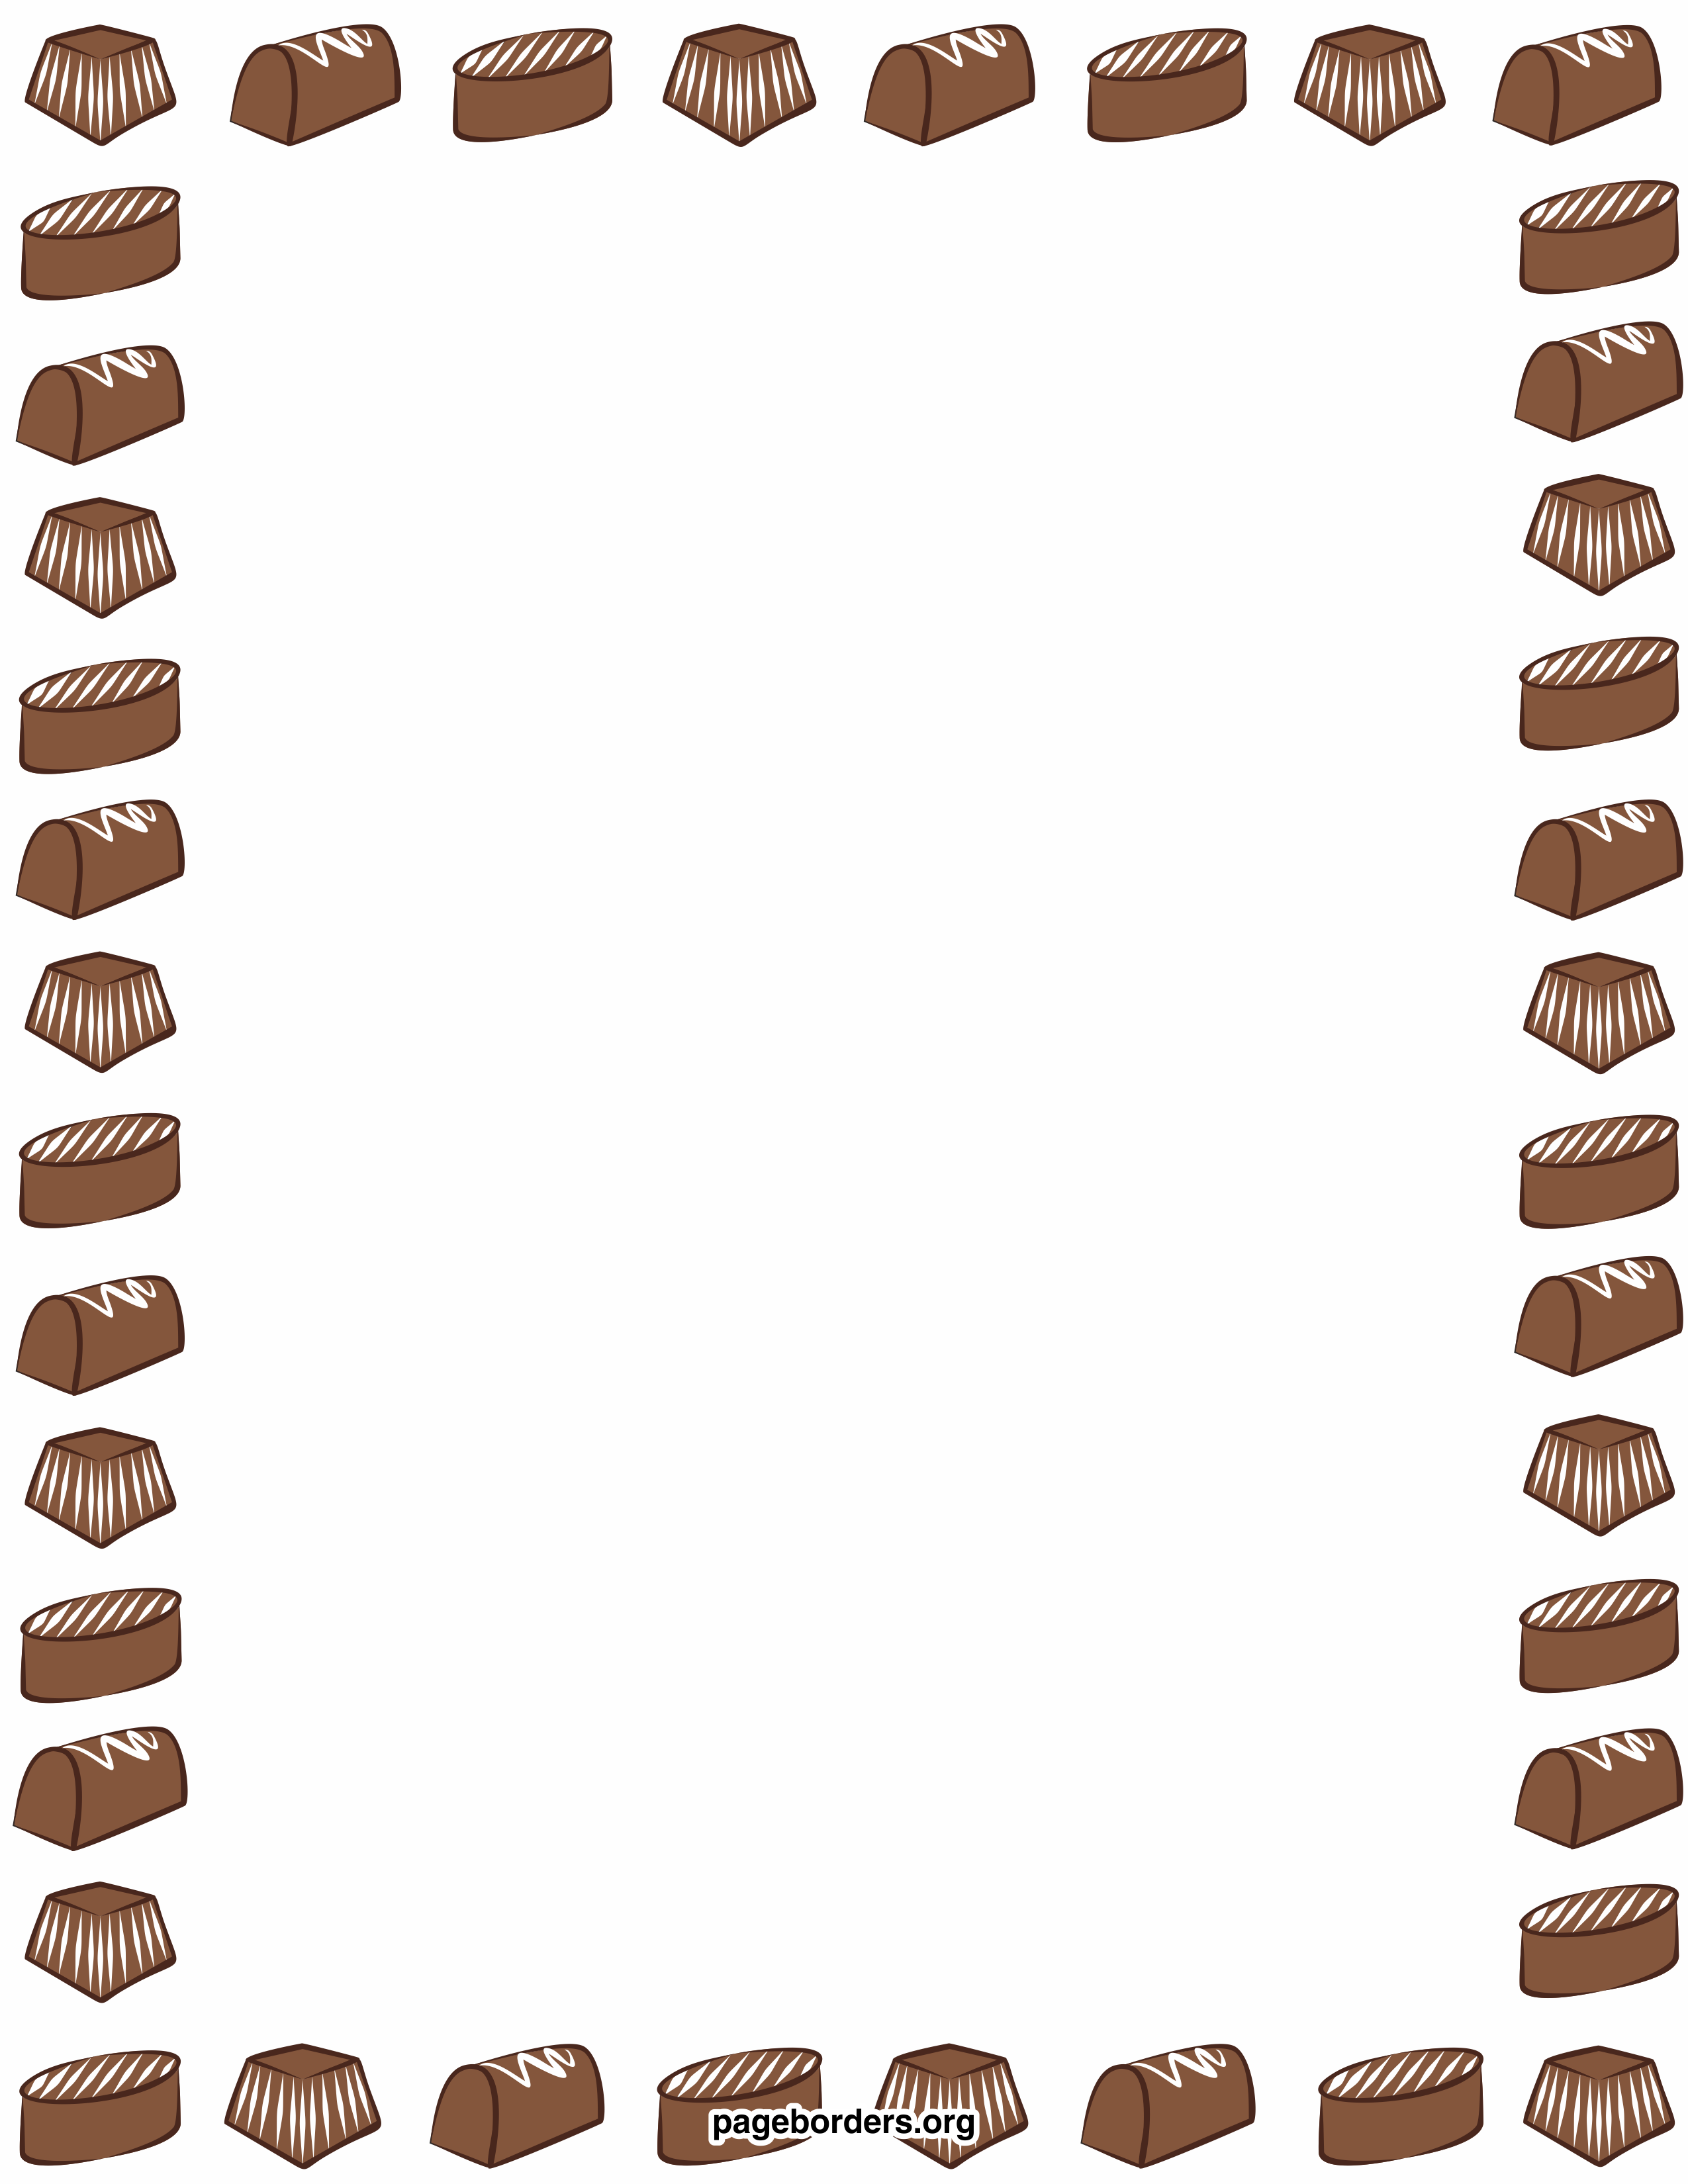 Brownie clipart vector. Cliparts free download best